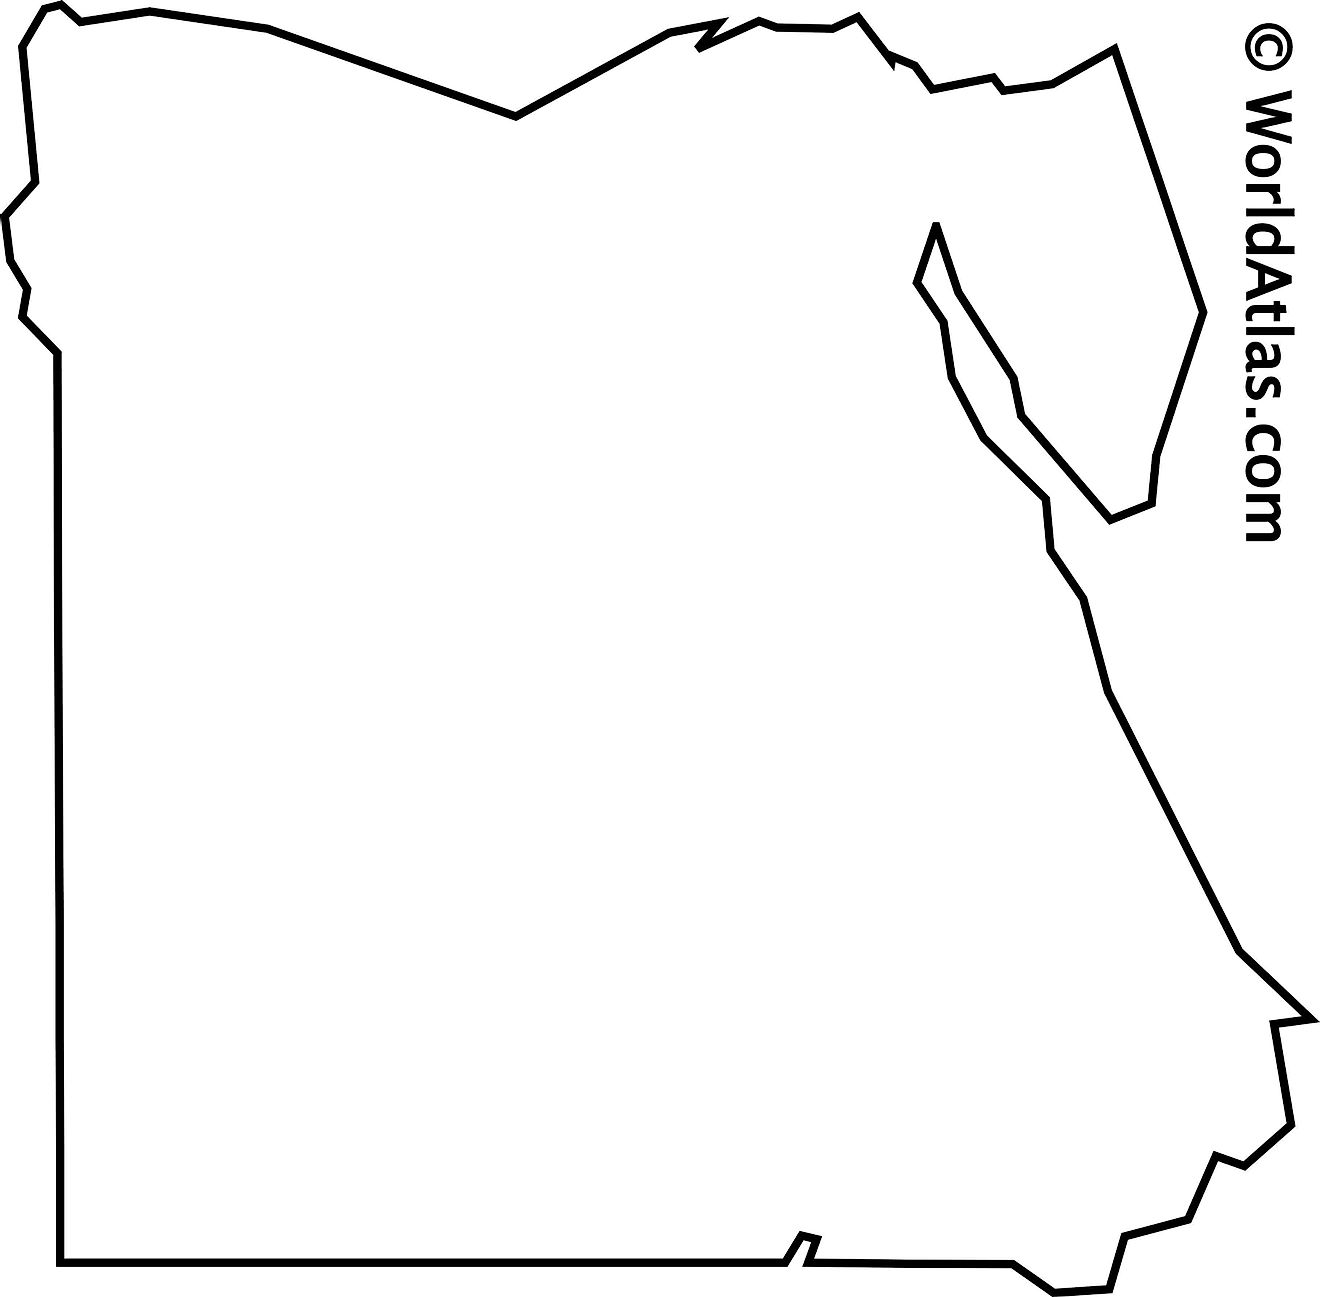 Blank Outline Map of Egypt